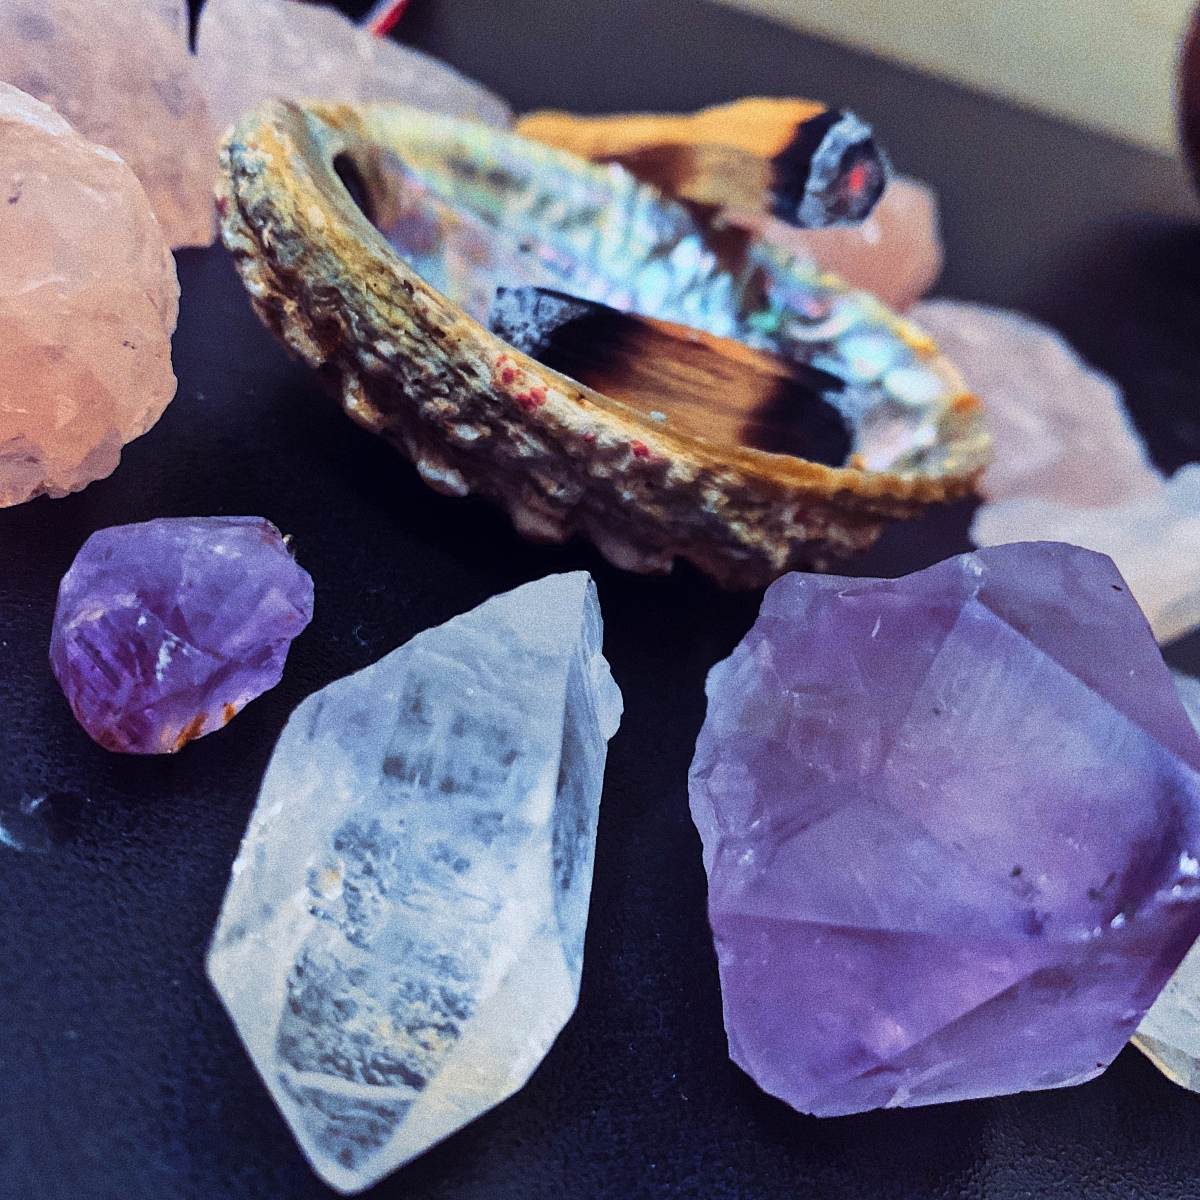 My top 5 Fav Healing Crystals